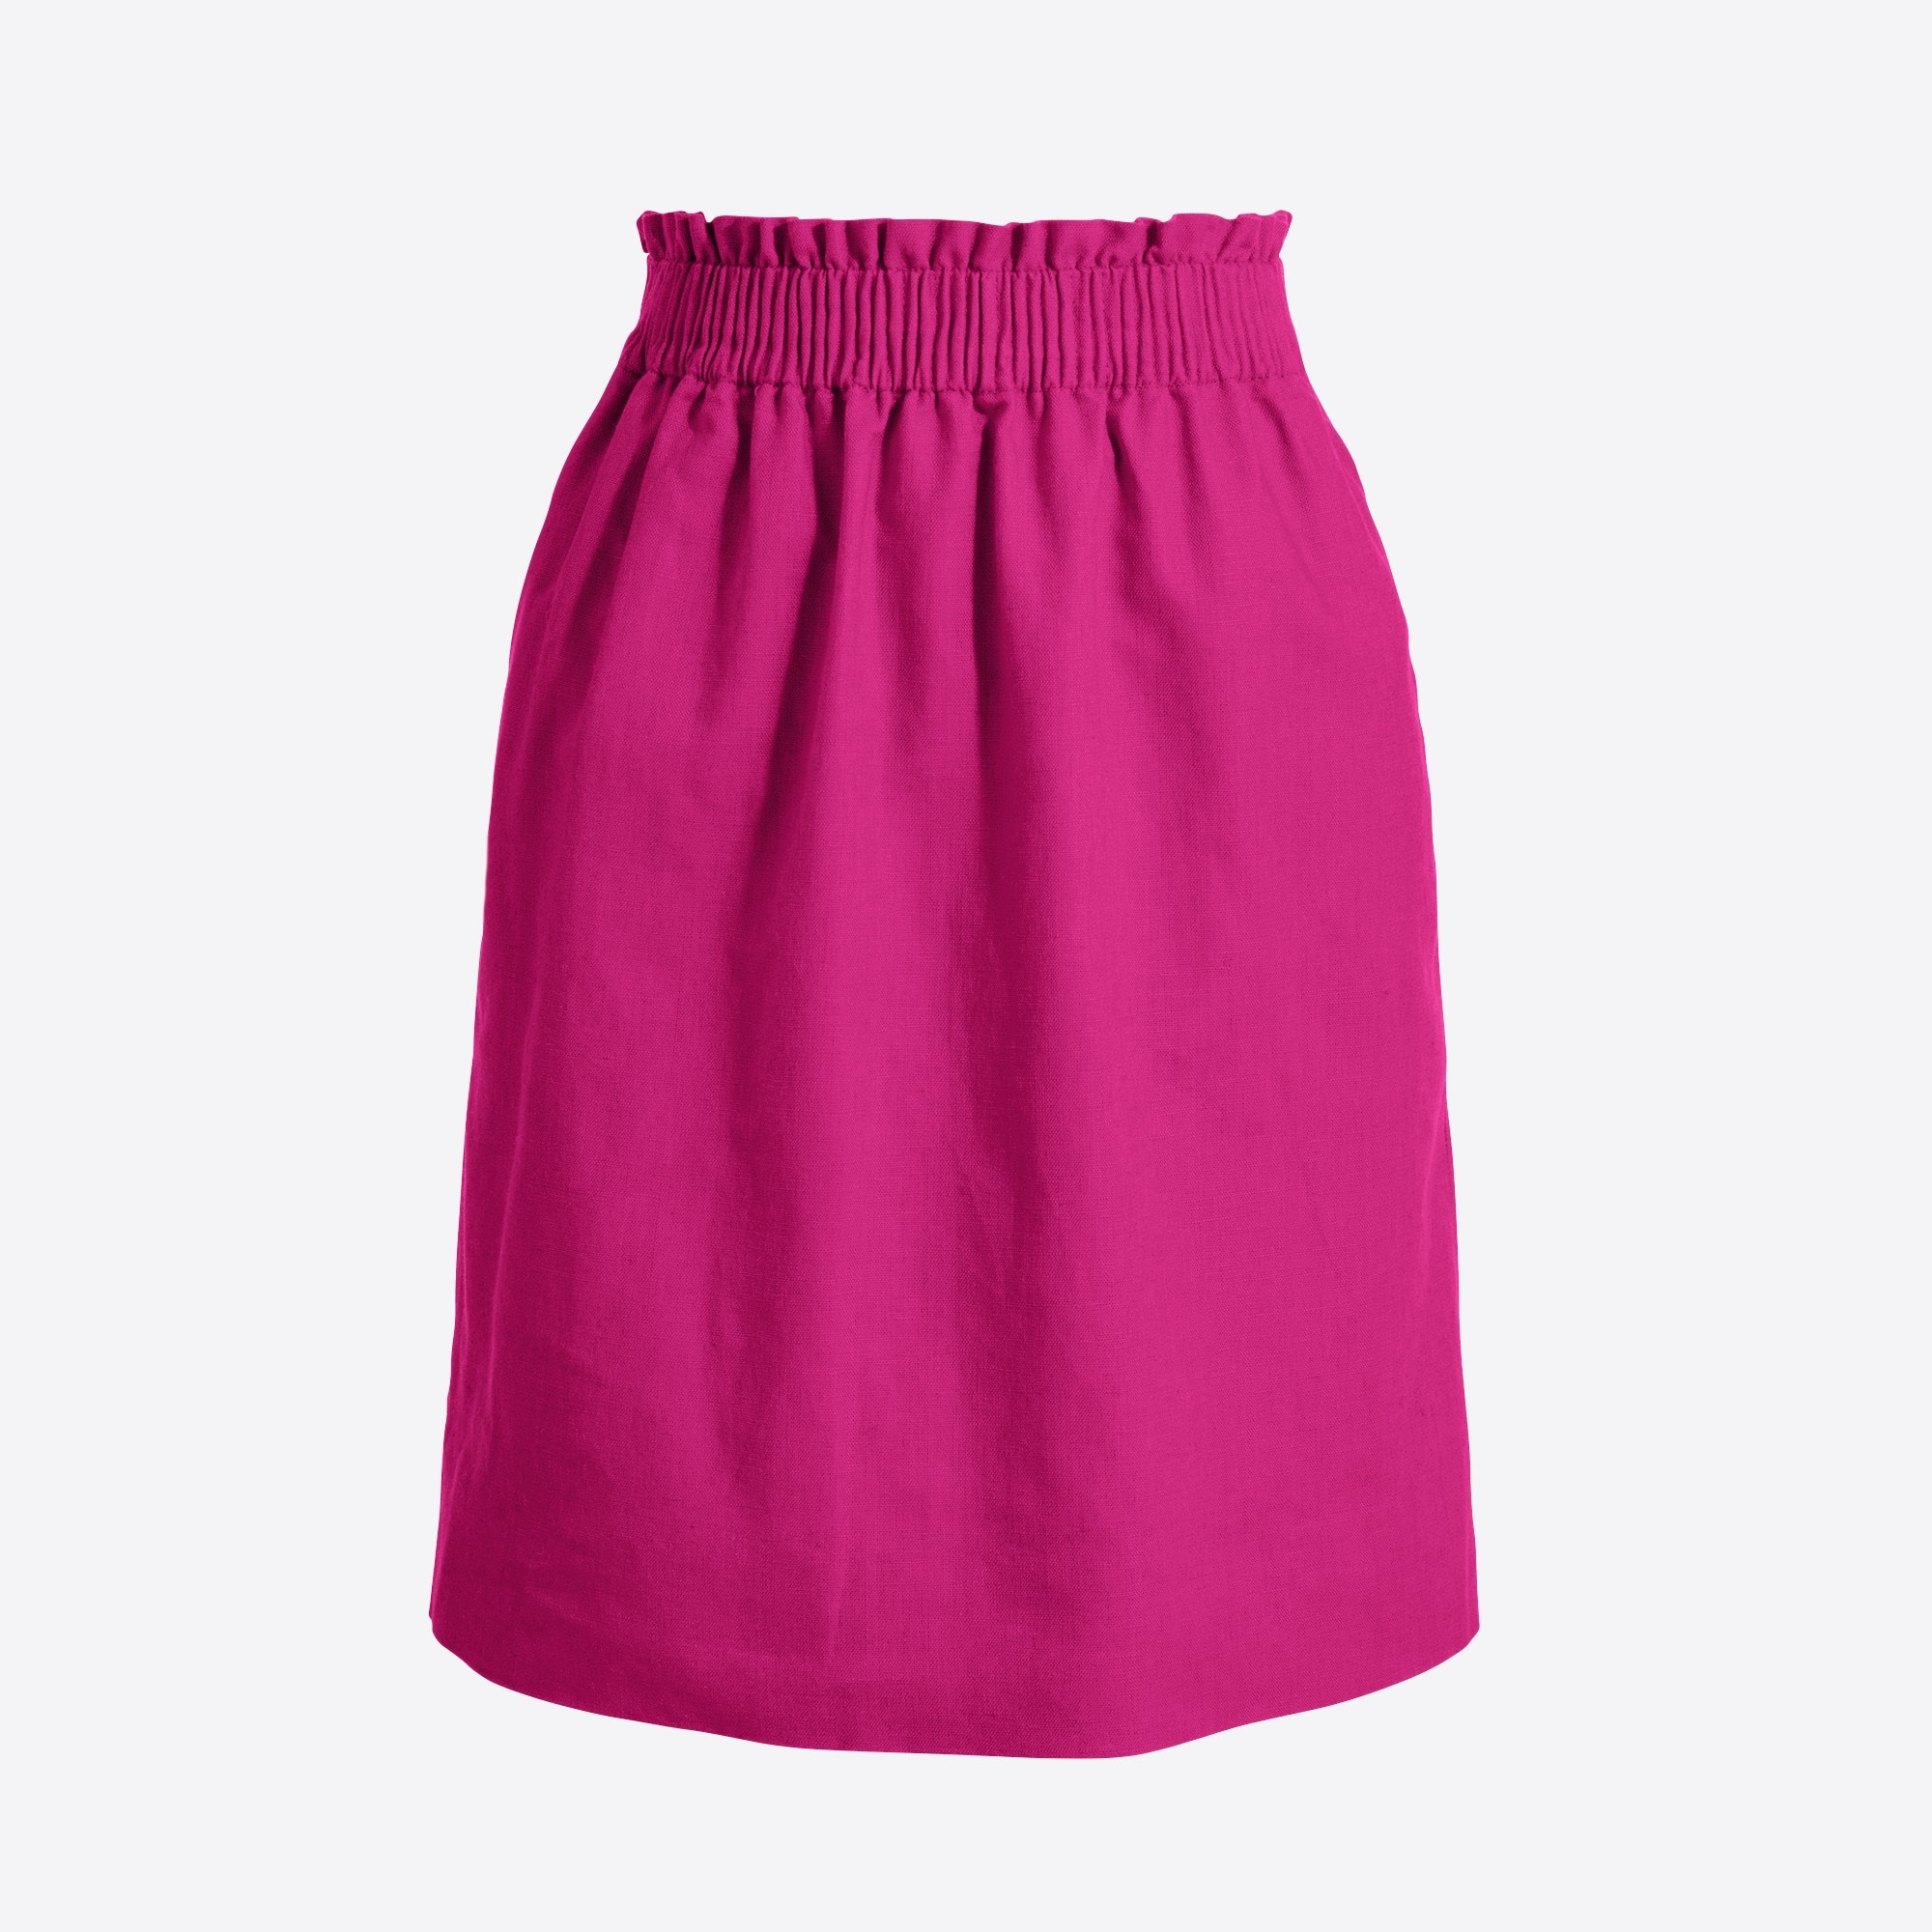 Image 1 for Linen-cotton sidewalk mini skirt